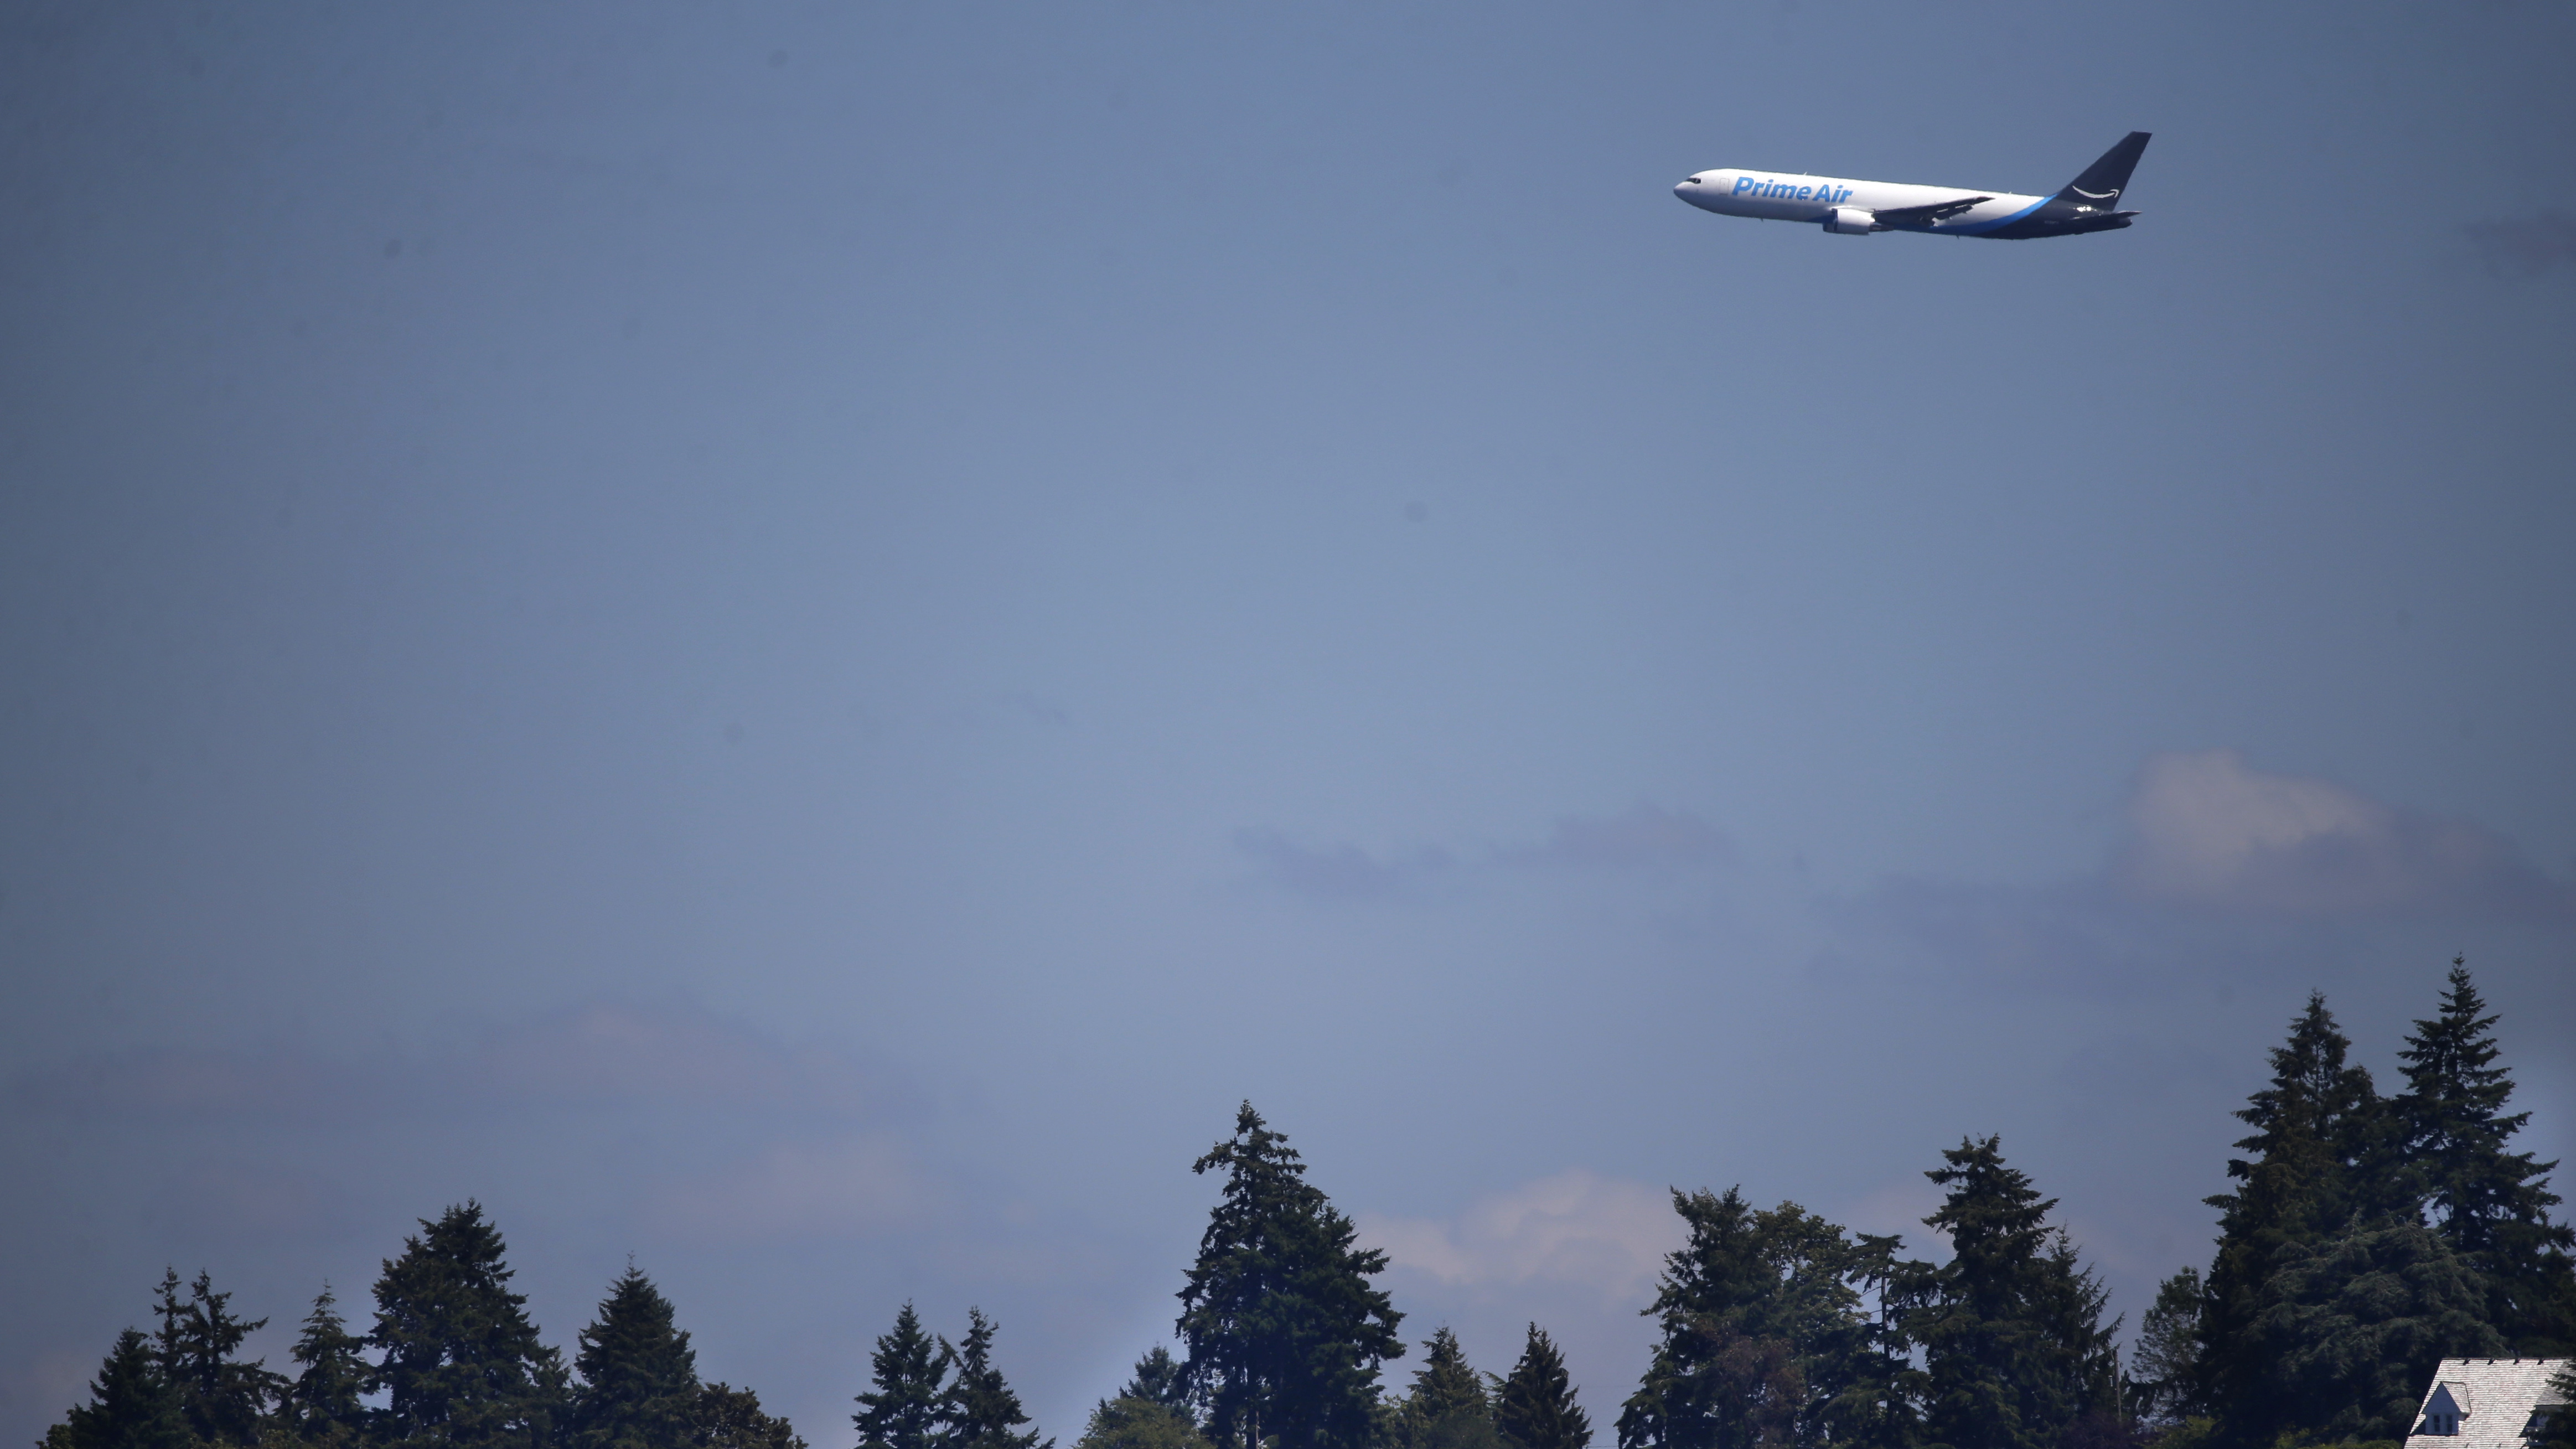 "A Boeing 767 with an Amazon.com ""Prime Air"" livery flies over houses on Lake Washington, Friday, Aug. 5, 2016, as part of the Boeing Seafair Air Show. Amazon unveiled its first branded cargo plane Thursday, one of 40 freighters that will make up the company's own air transportation network of 40 Boeing jets leased from Atlas Air and Air Transportation Services Group, which will operate the air cargo network. (AP Photo/Ted S. Warren)"